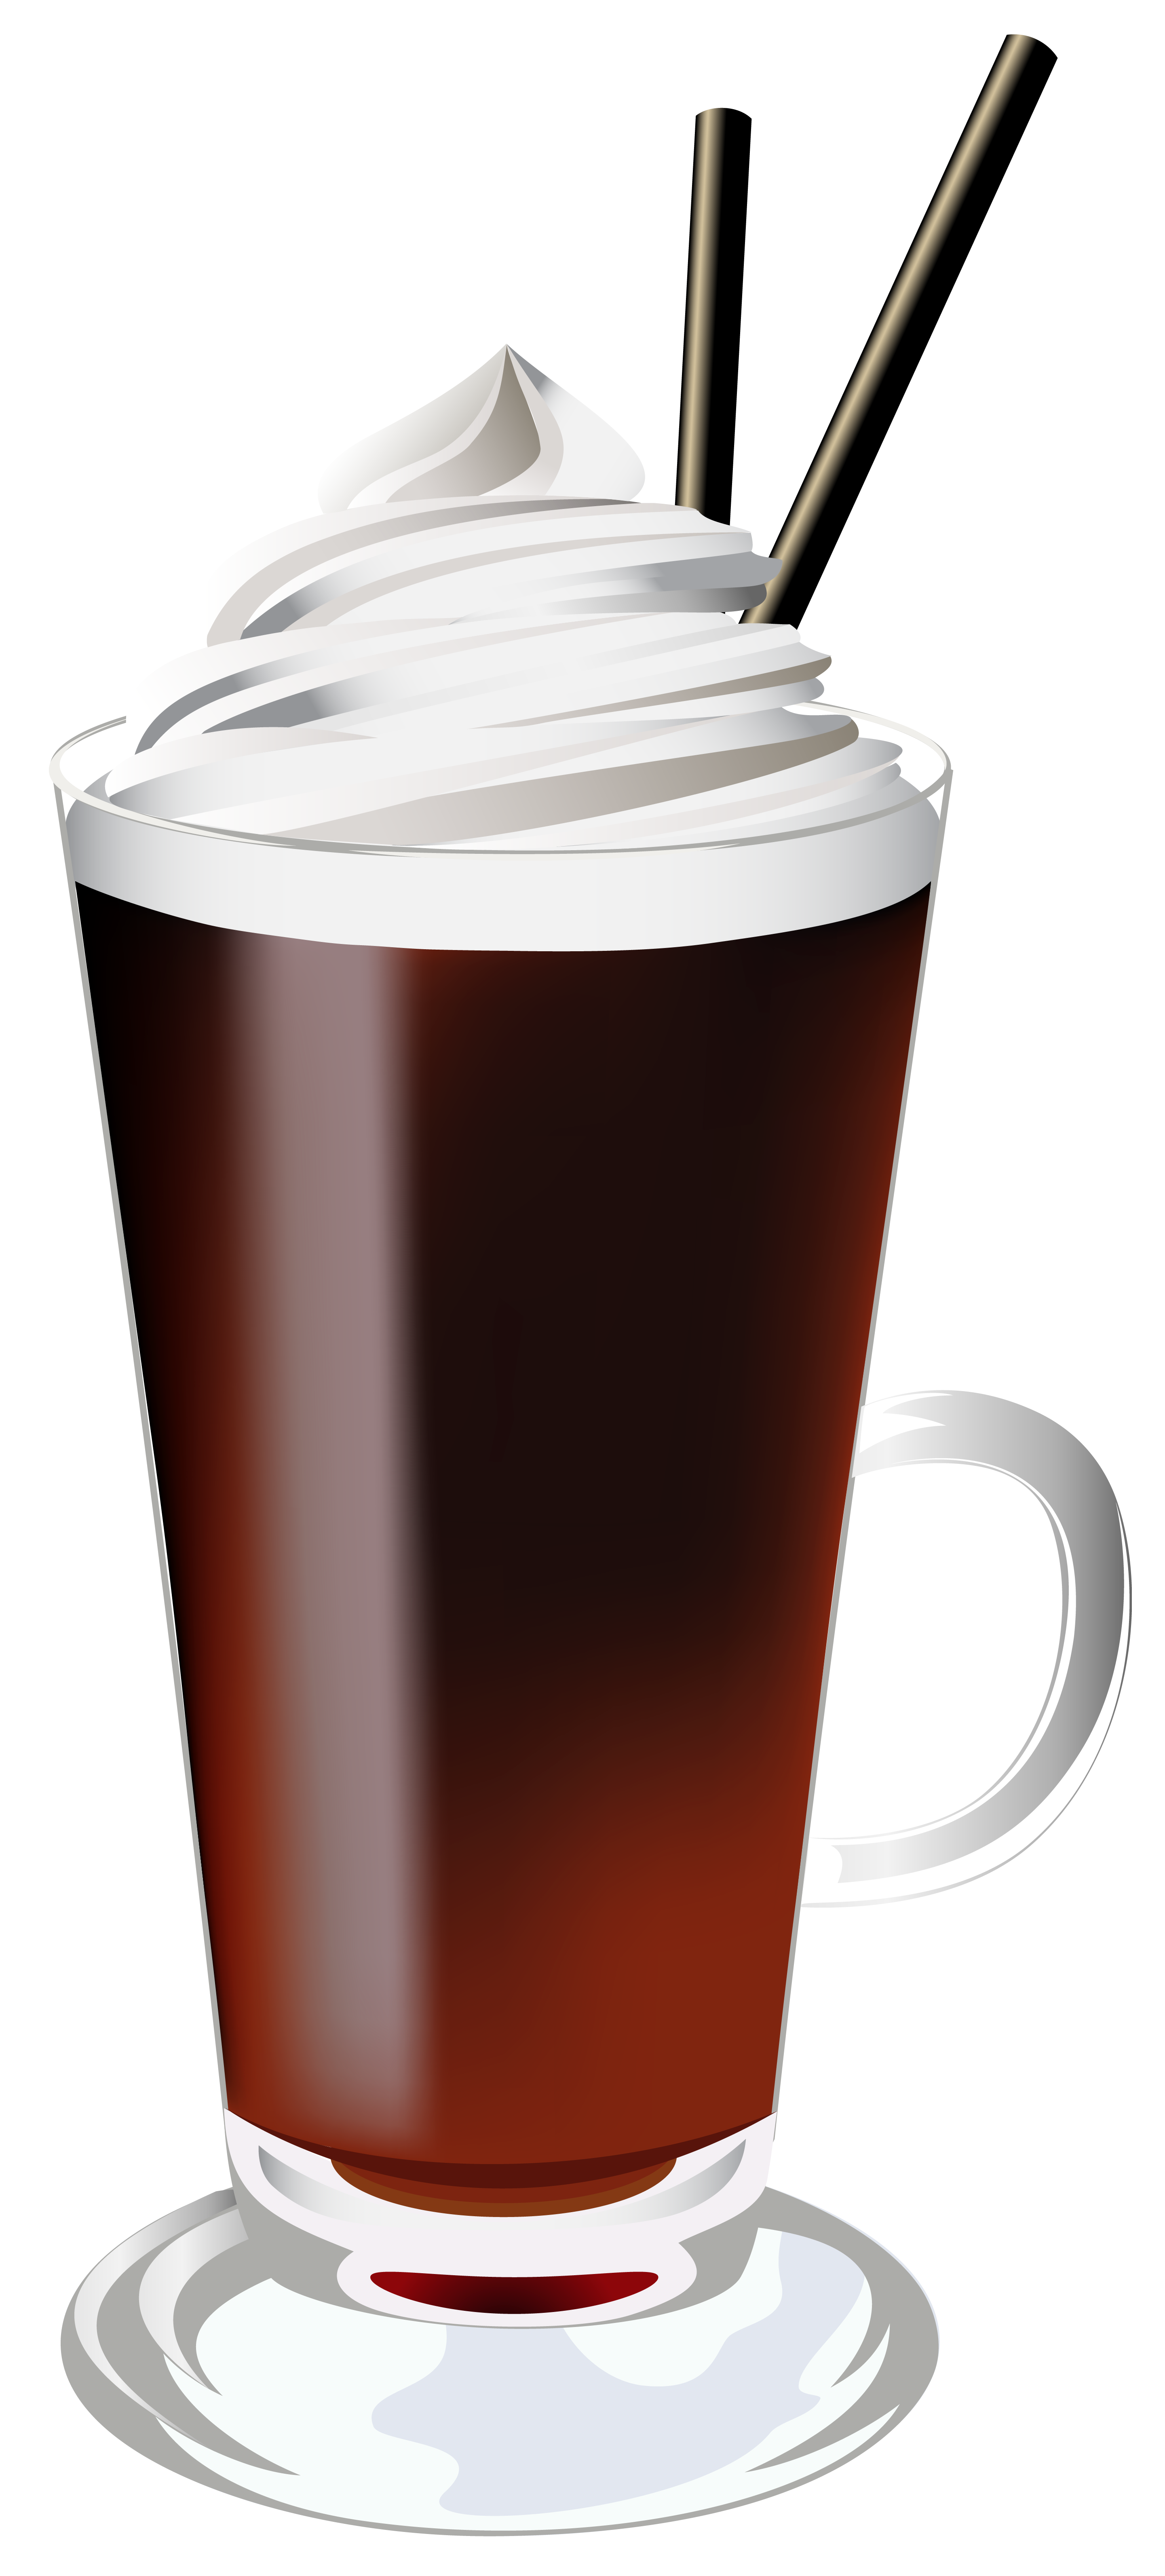 Clipart coffee mocha. Cocktail png image gallery